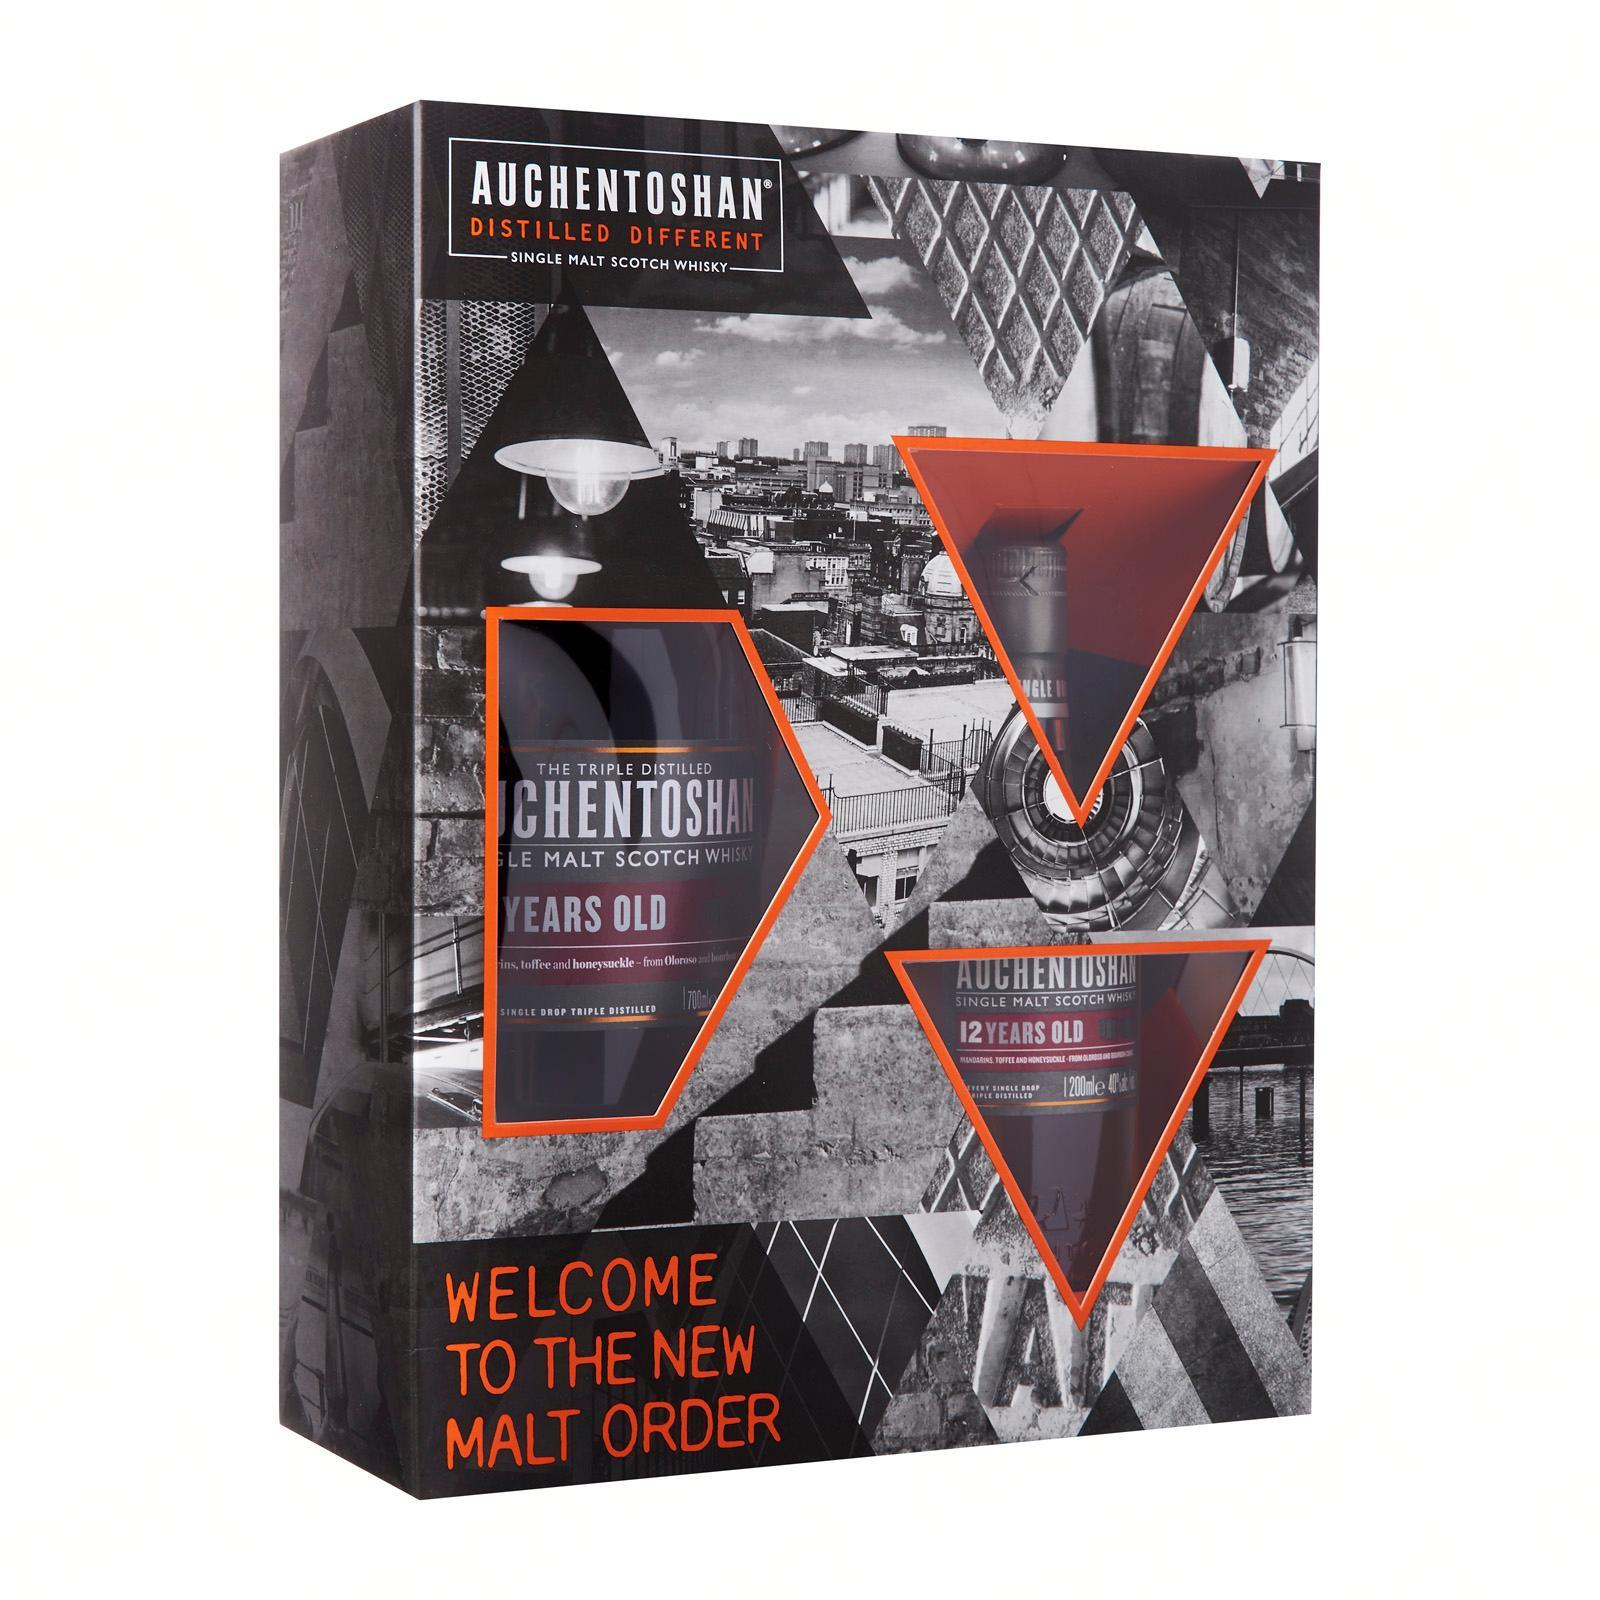 Auchentoshan Auchentoshan 12 Years 700Ml + Auchentoshan 12 Years 200Ml Gift Set With Box - By The Liquor Shop Singapore